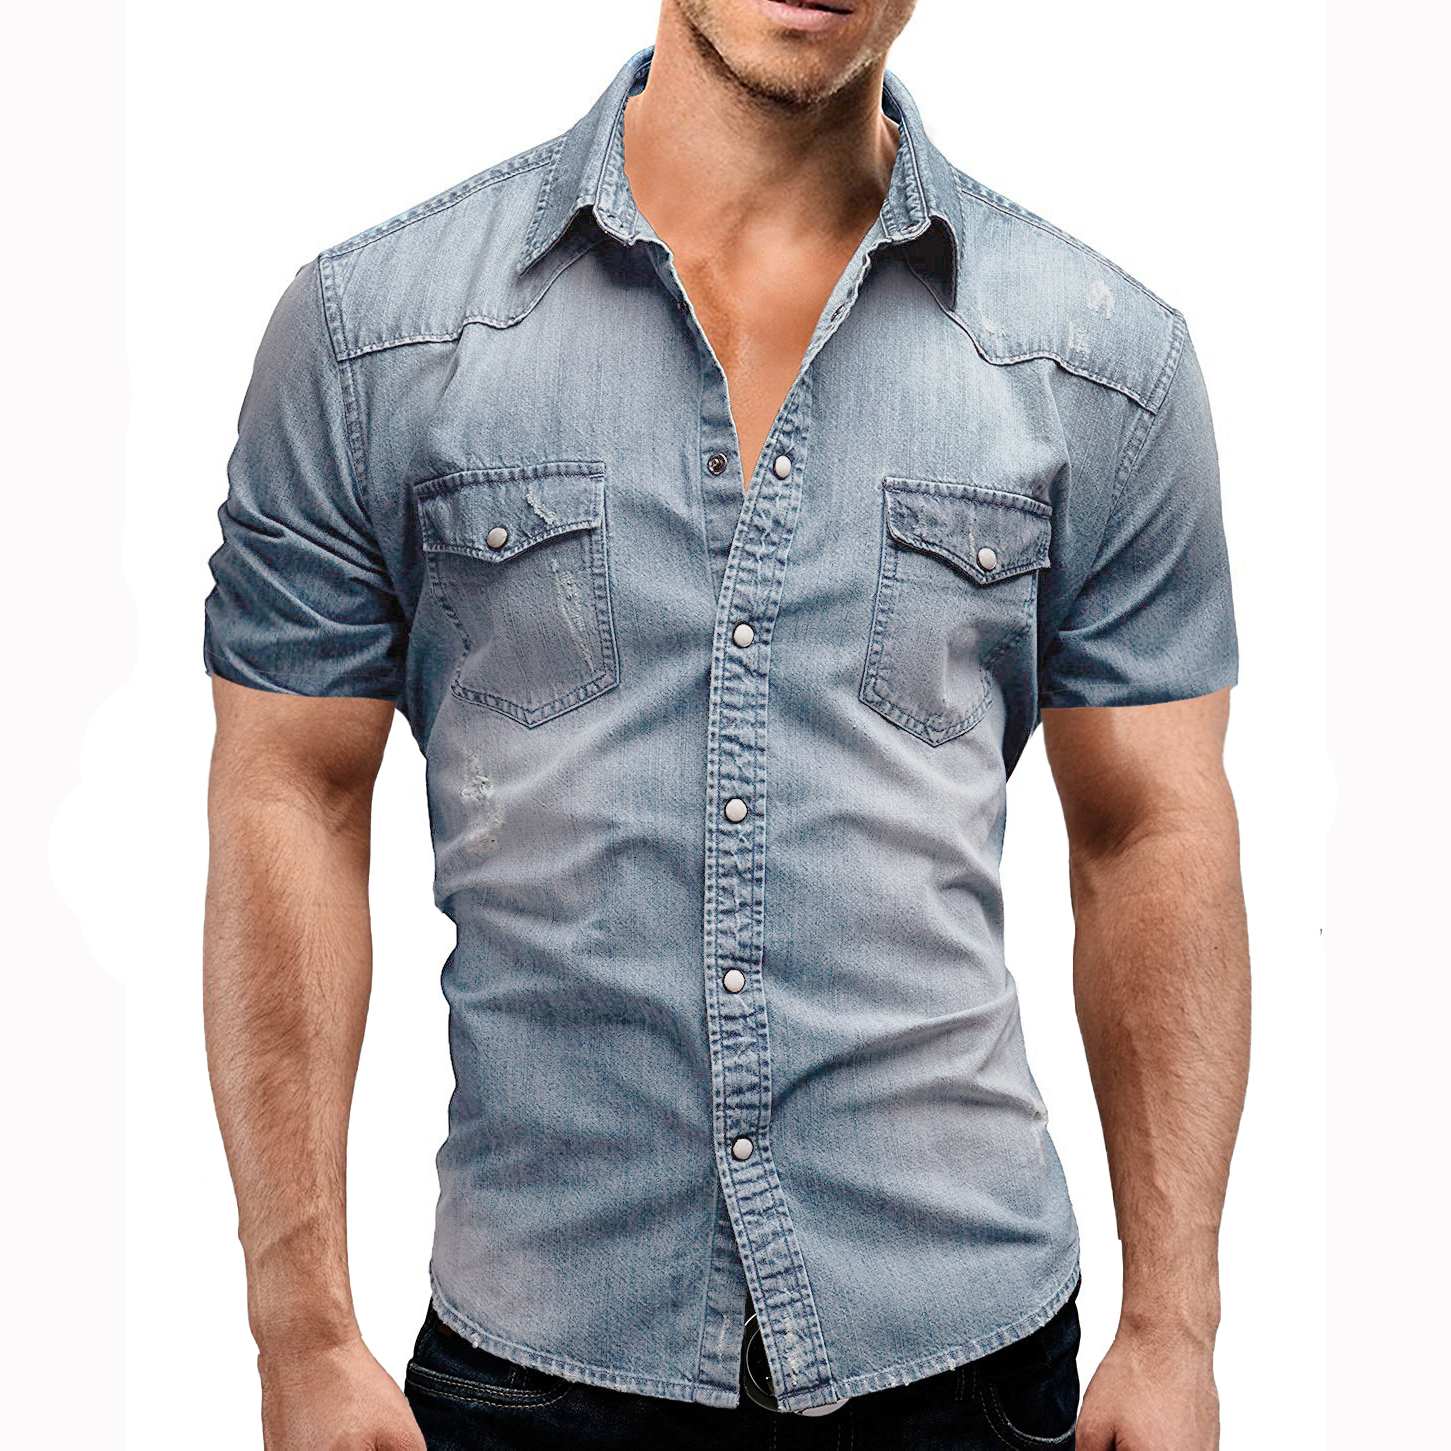 Men's Regular-fit Long-Sleeve Denim Work Shirt Two Button Front Chest Pockets & Pencil Slot Rugged Wear Thin Casual Cotton Shirts 4